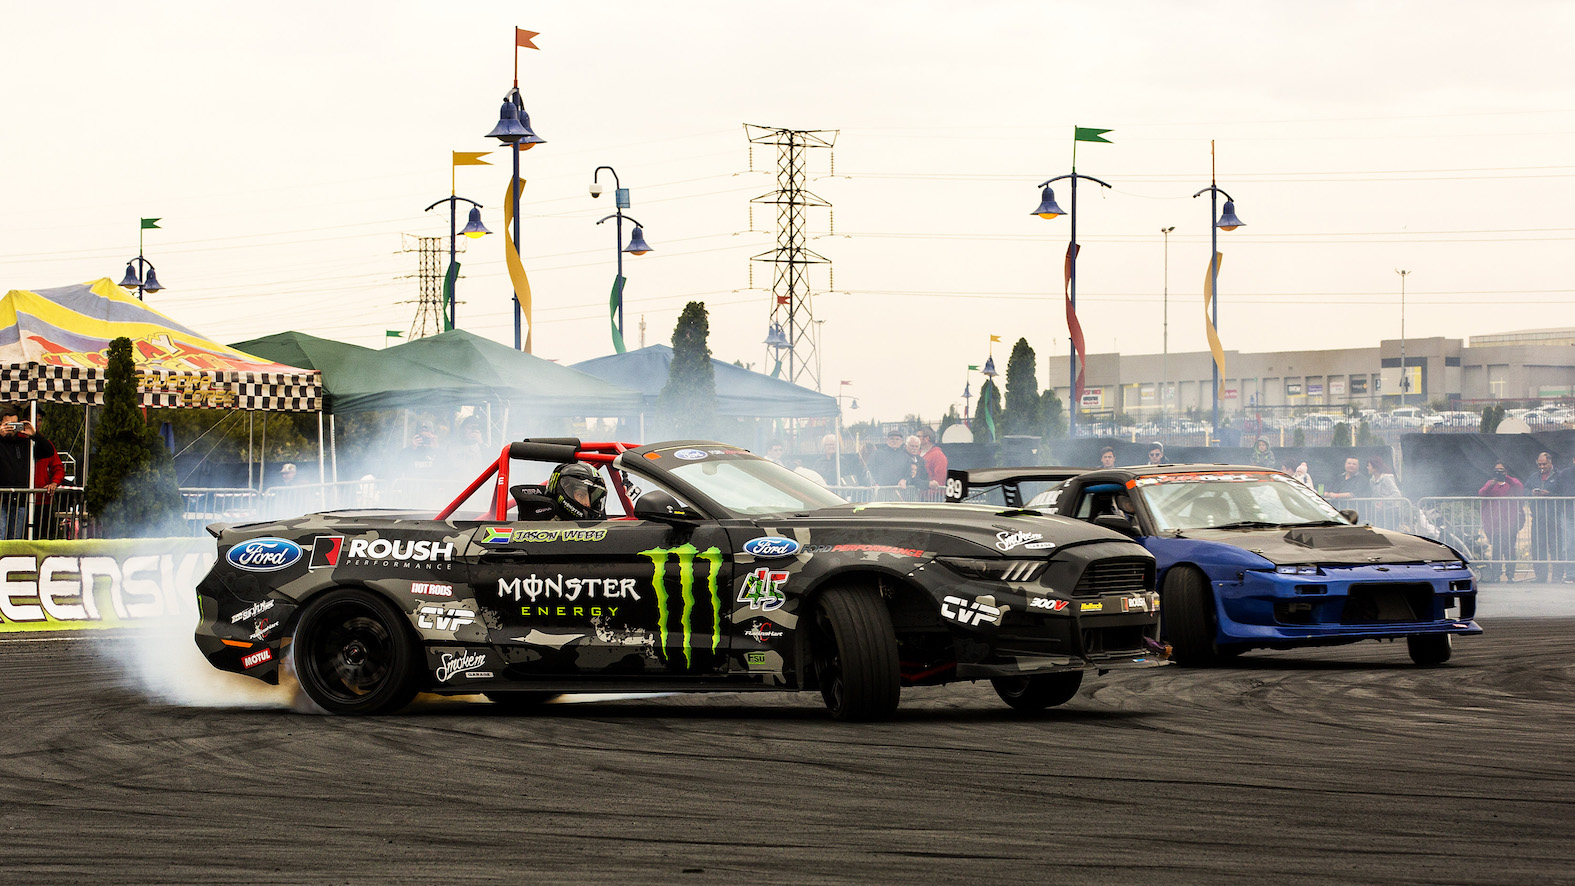 Jason Webb putting his drifting skill to work in the SupaDrift Series